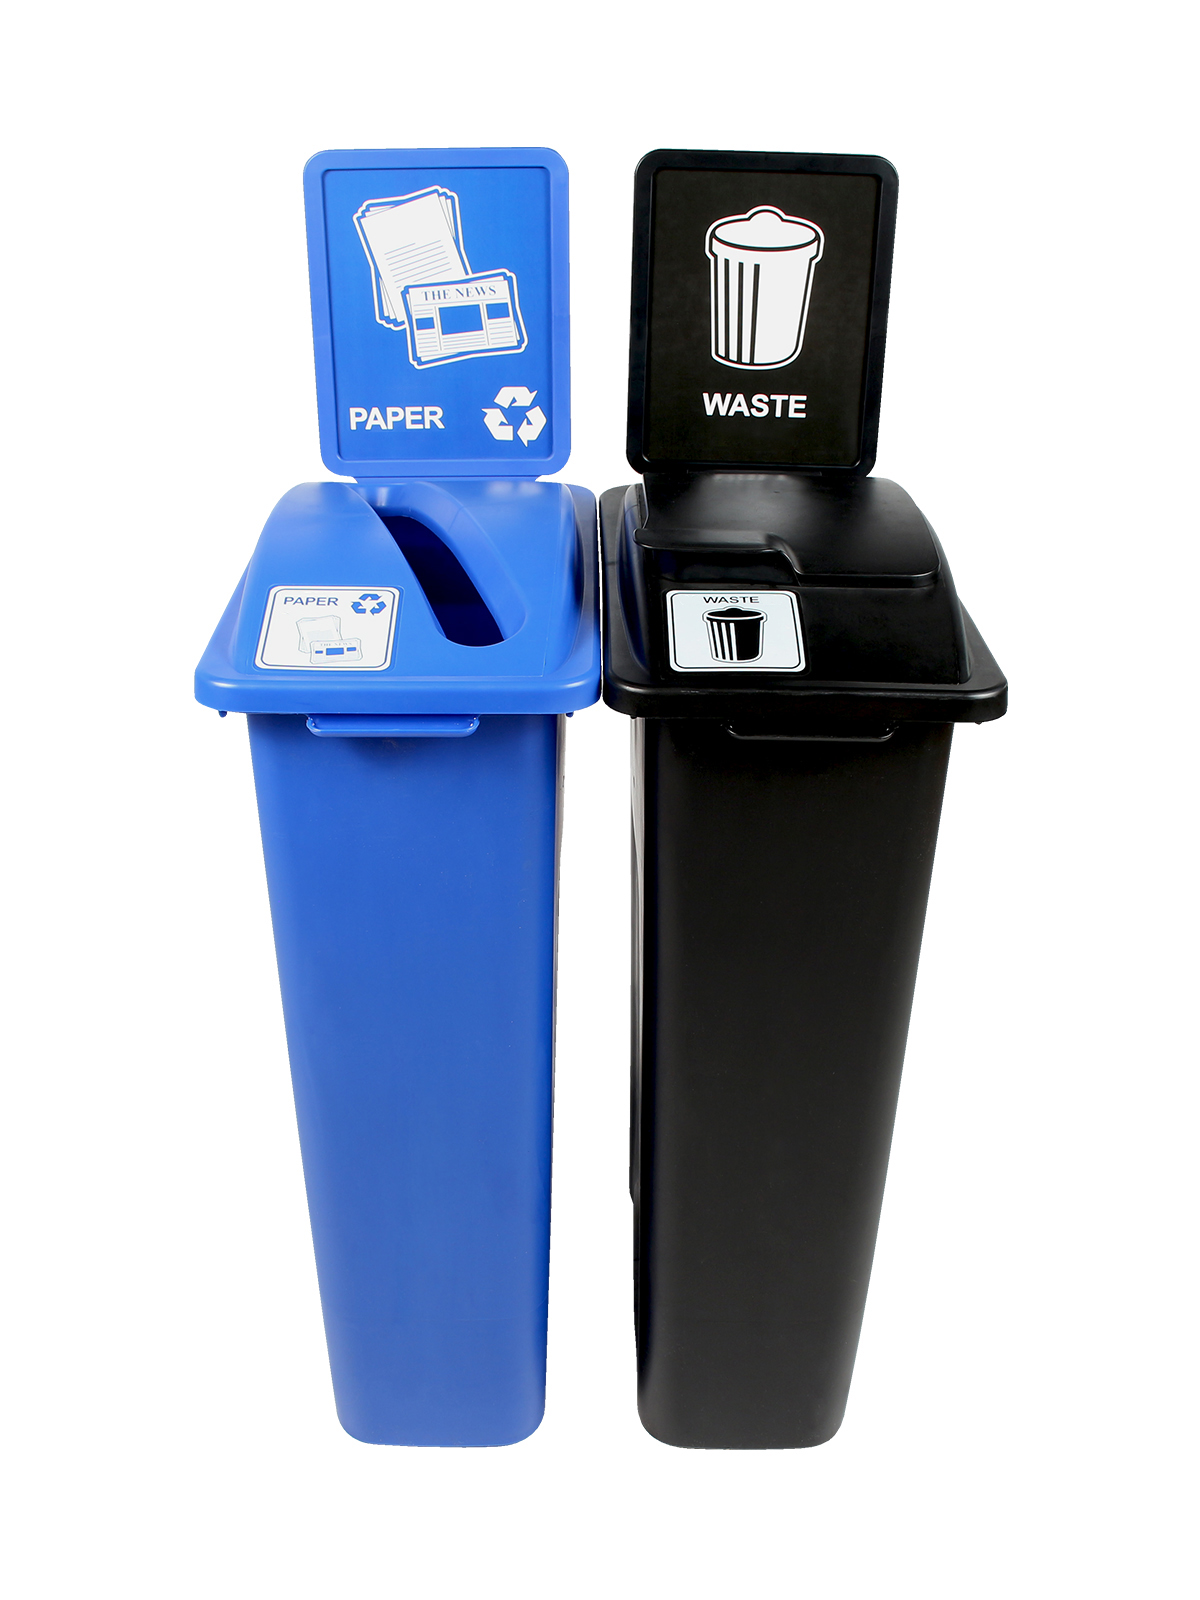 WASTE WATCHER - Double - Paper-Waste - Slot-Solid Lift - Blue-Black